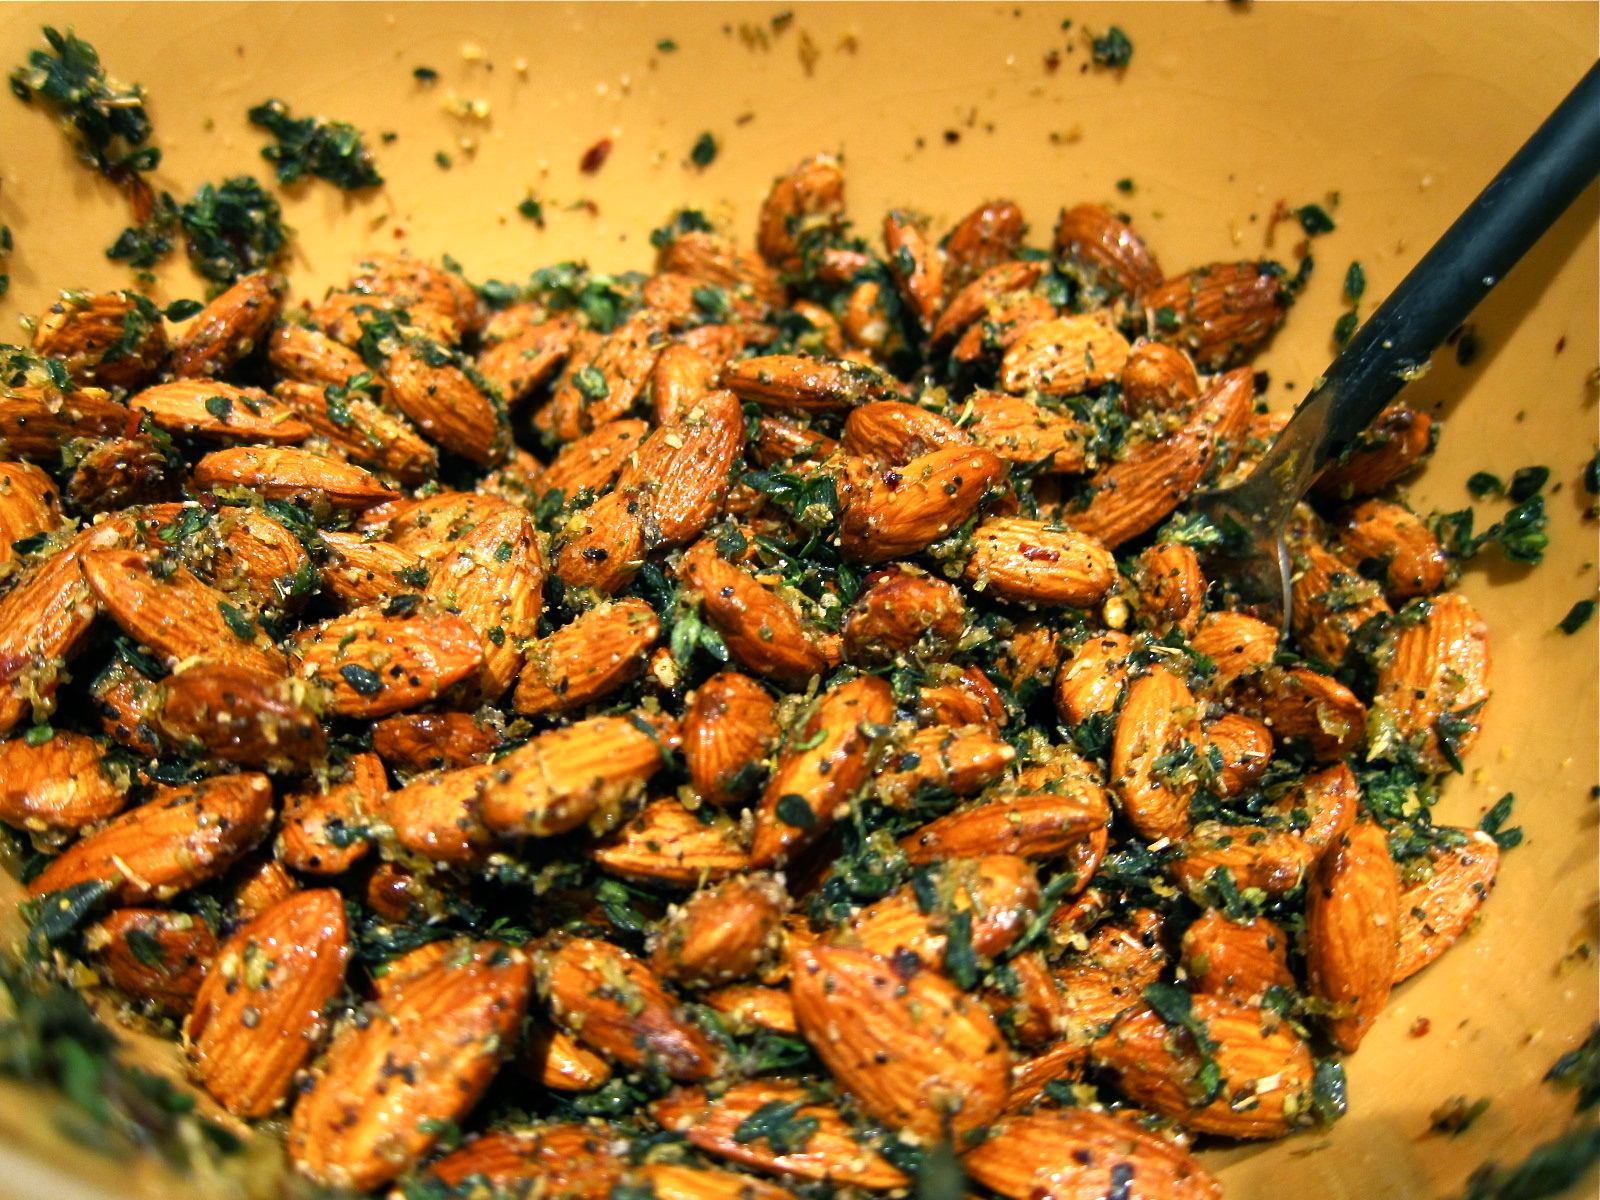 Saleena: Savory Roasted Almonds